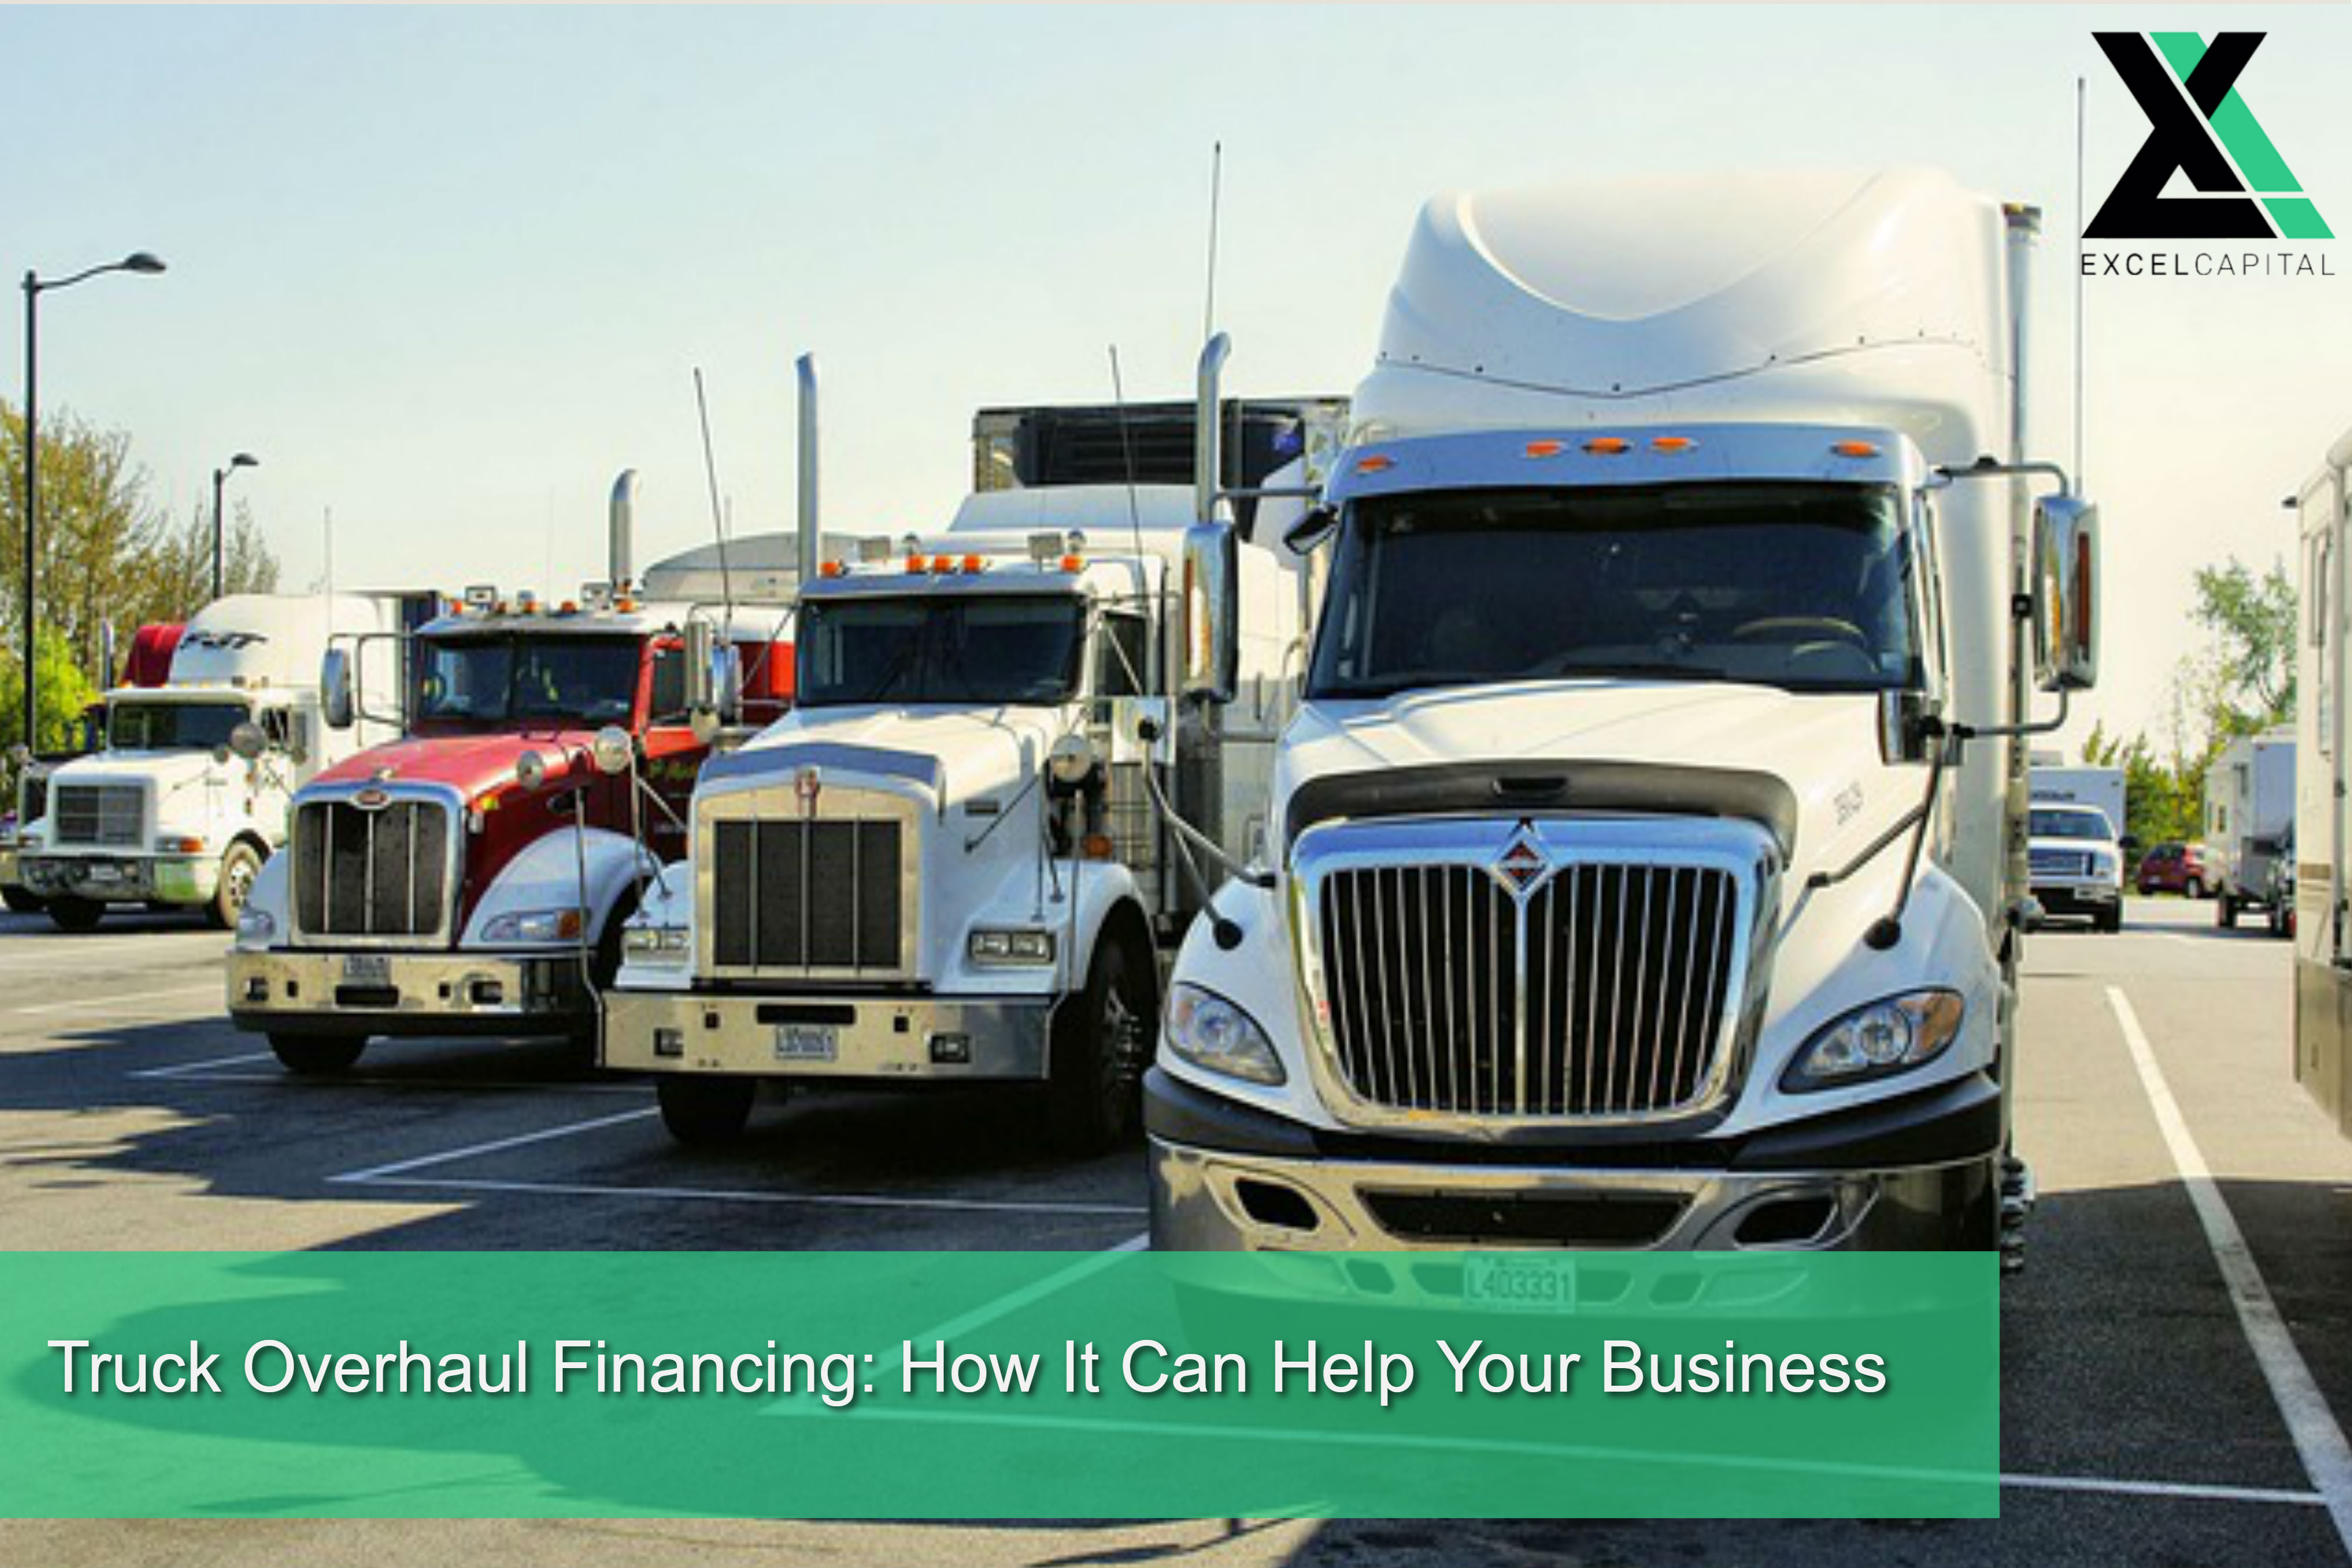 Truck Overhaul Financing: How It Can Help Your Business   Excel Capital Management